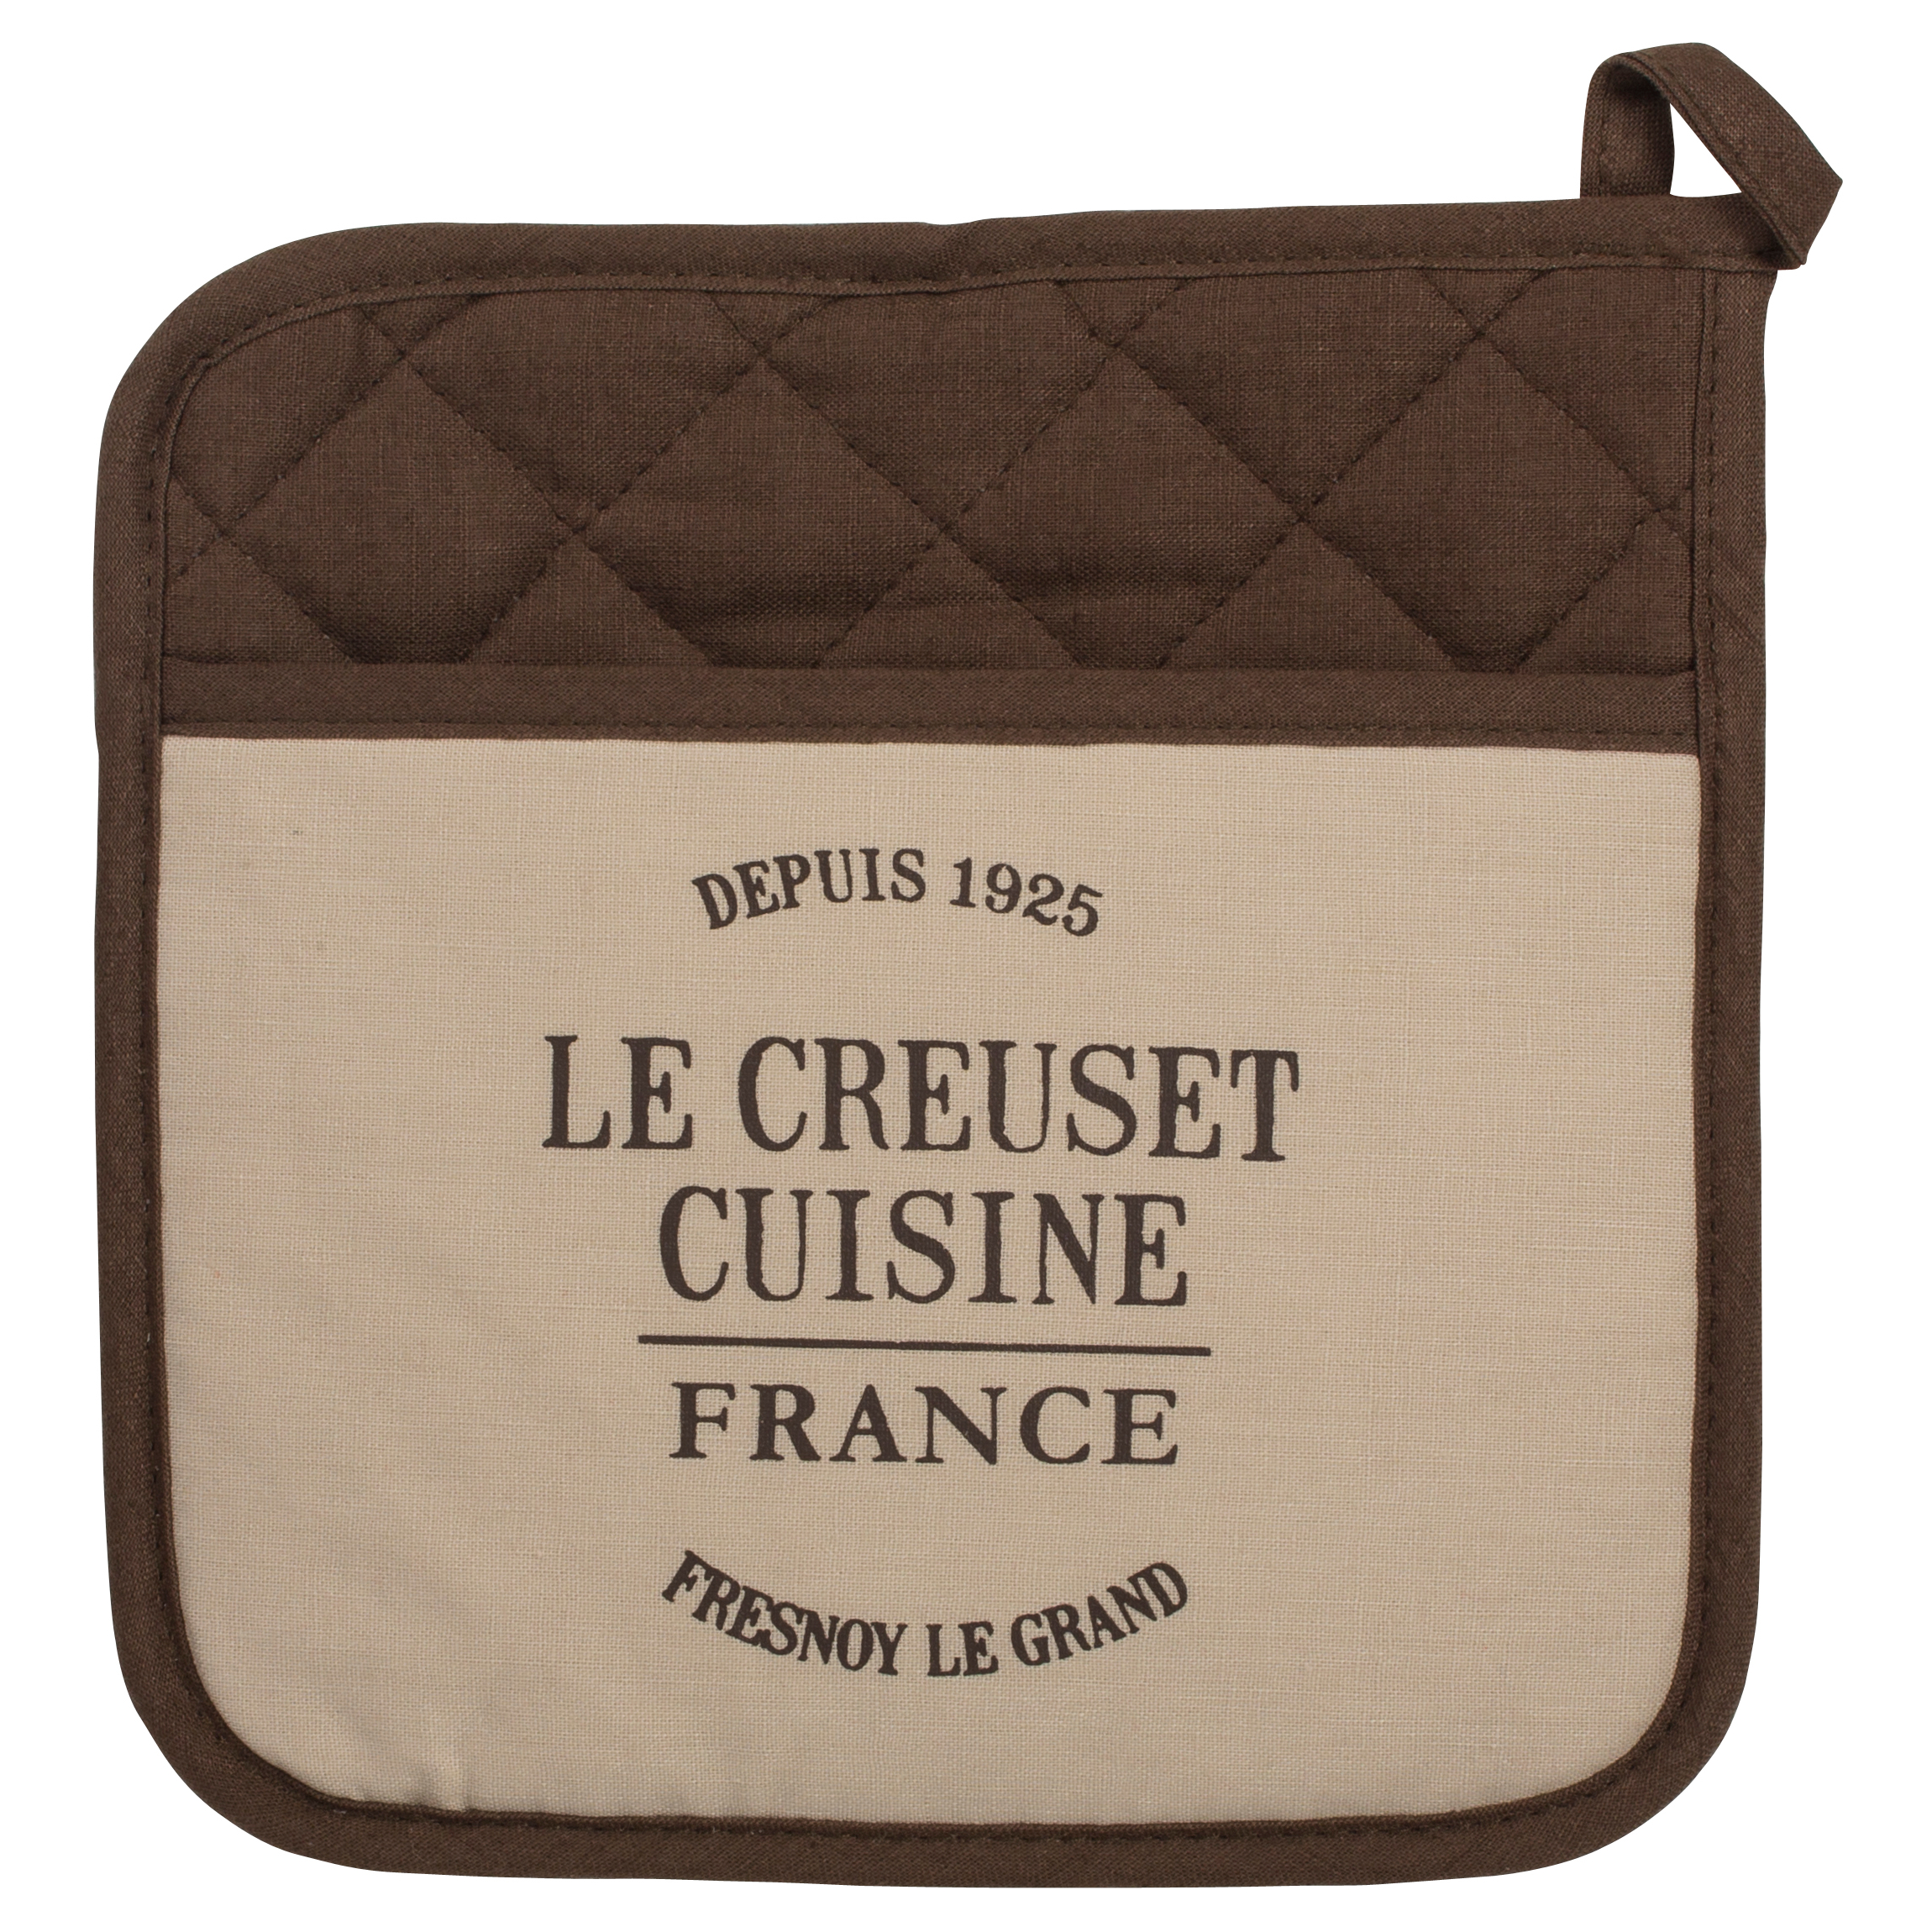 Le Creuset Heritage Truffle 9 x 9 Inch Pot Holder